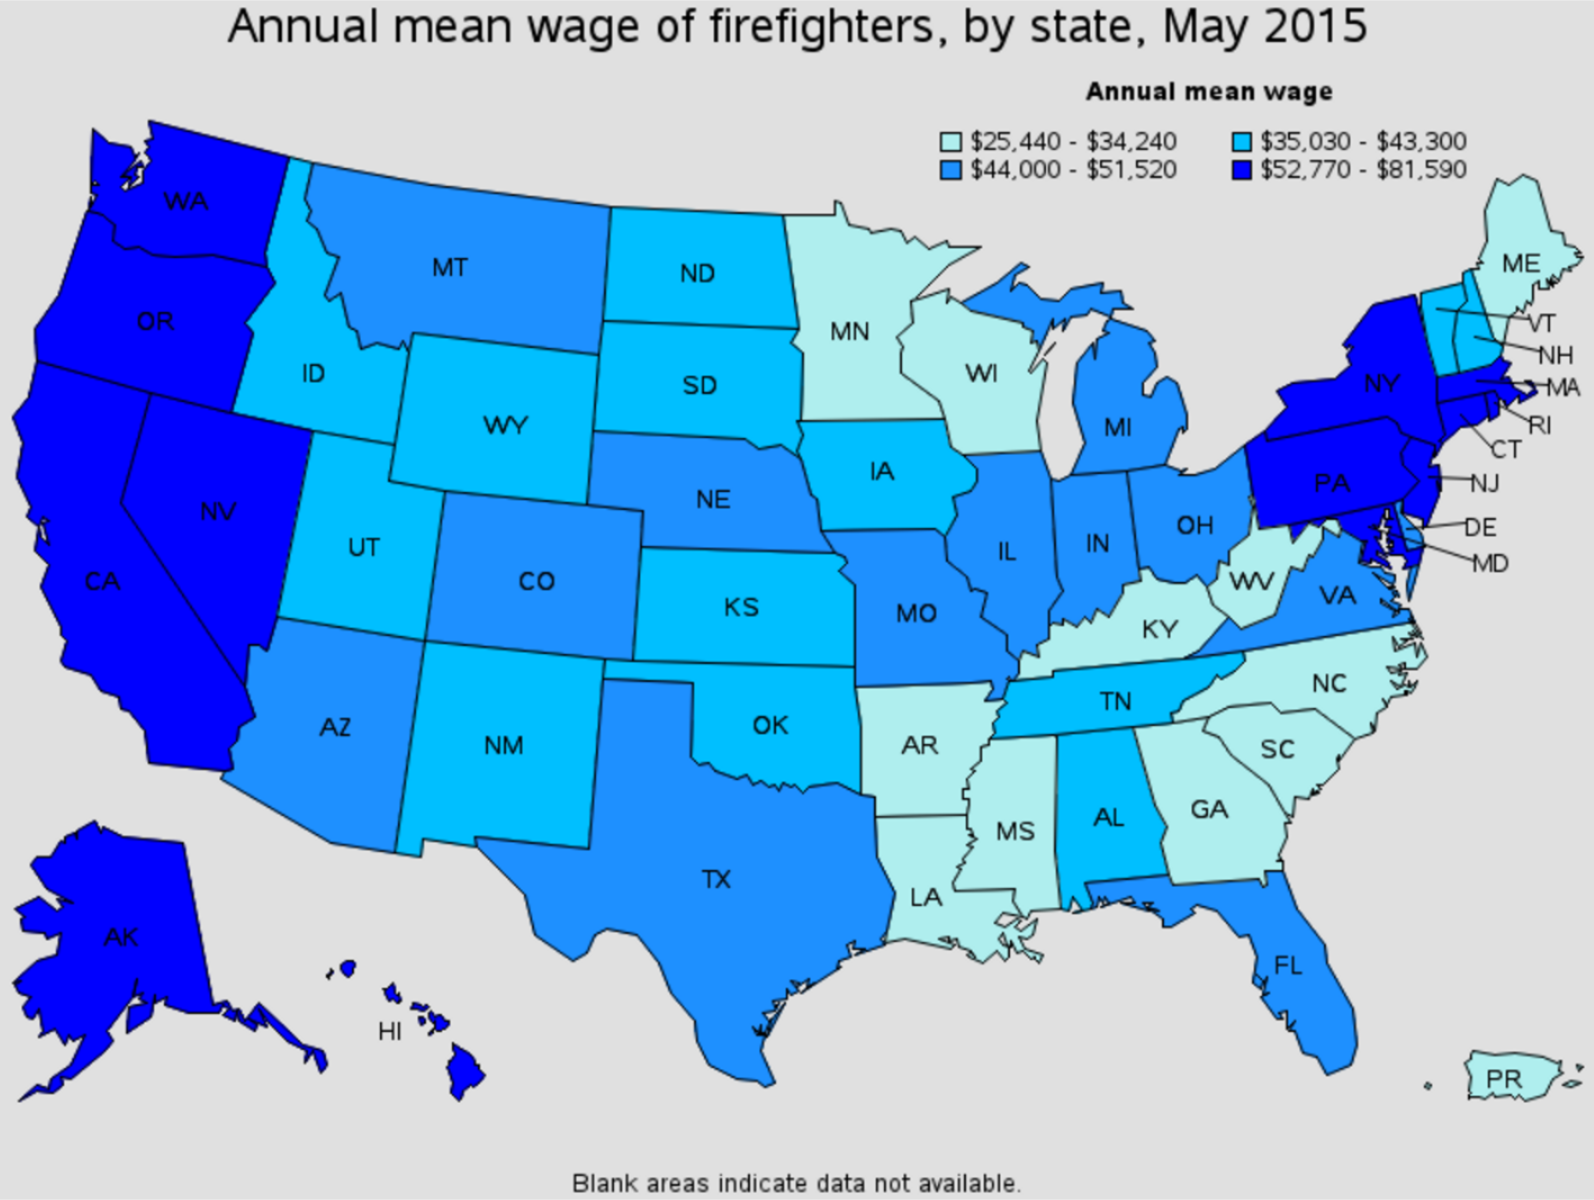 firefighter average salary by state Winslow Arkansas